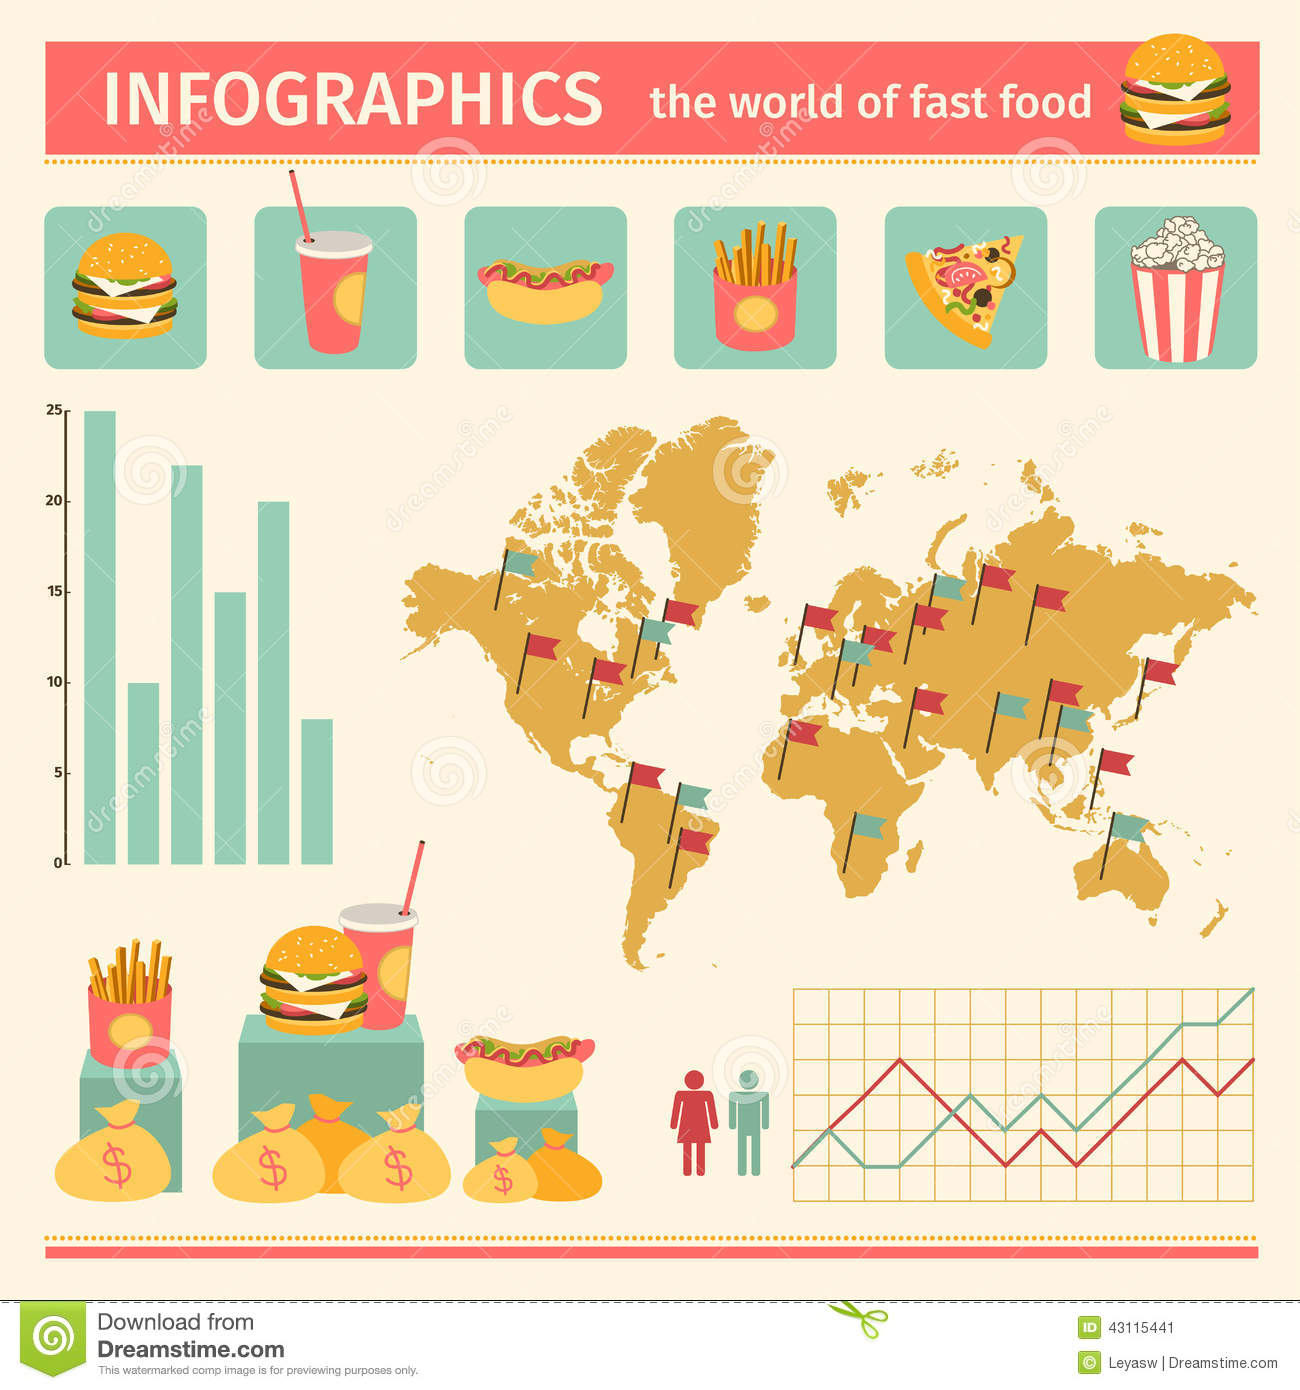 Infographic Consumption Of Fast Food Around The World